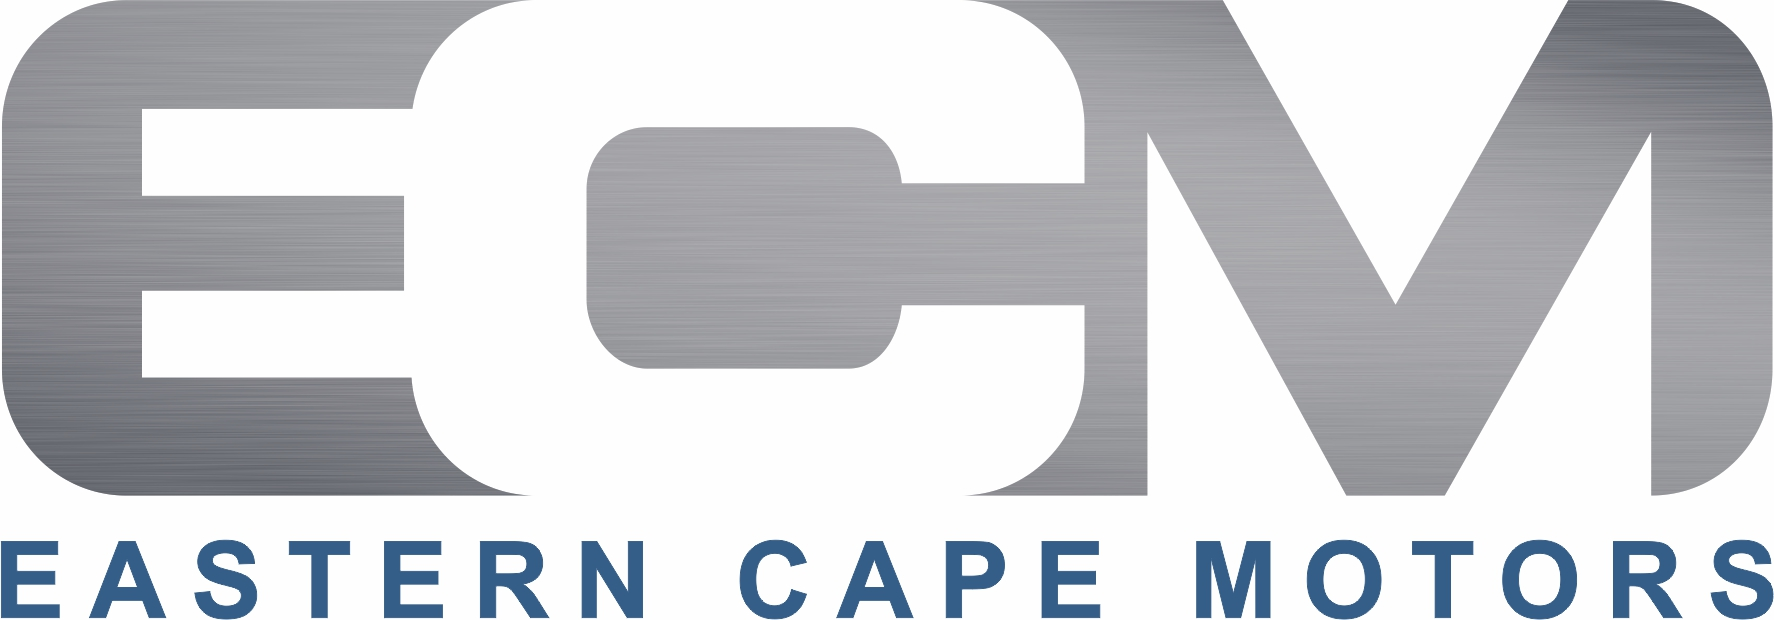 The Eastern Cape Motor Group is one of the largest privately owned Motor Groups in South Africa. They have been trusted by motorists since 1985 with all of ...